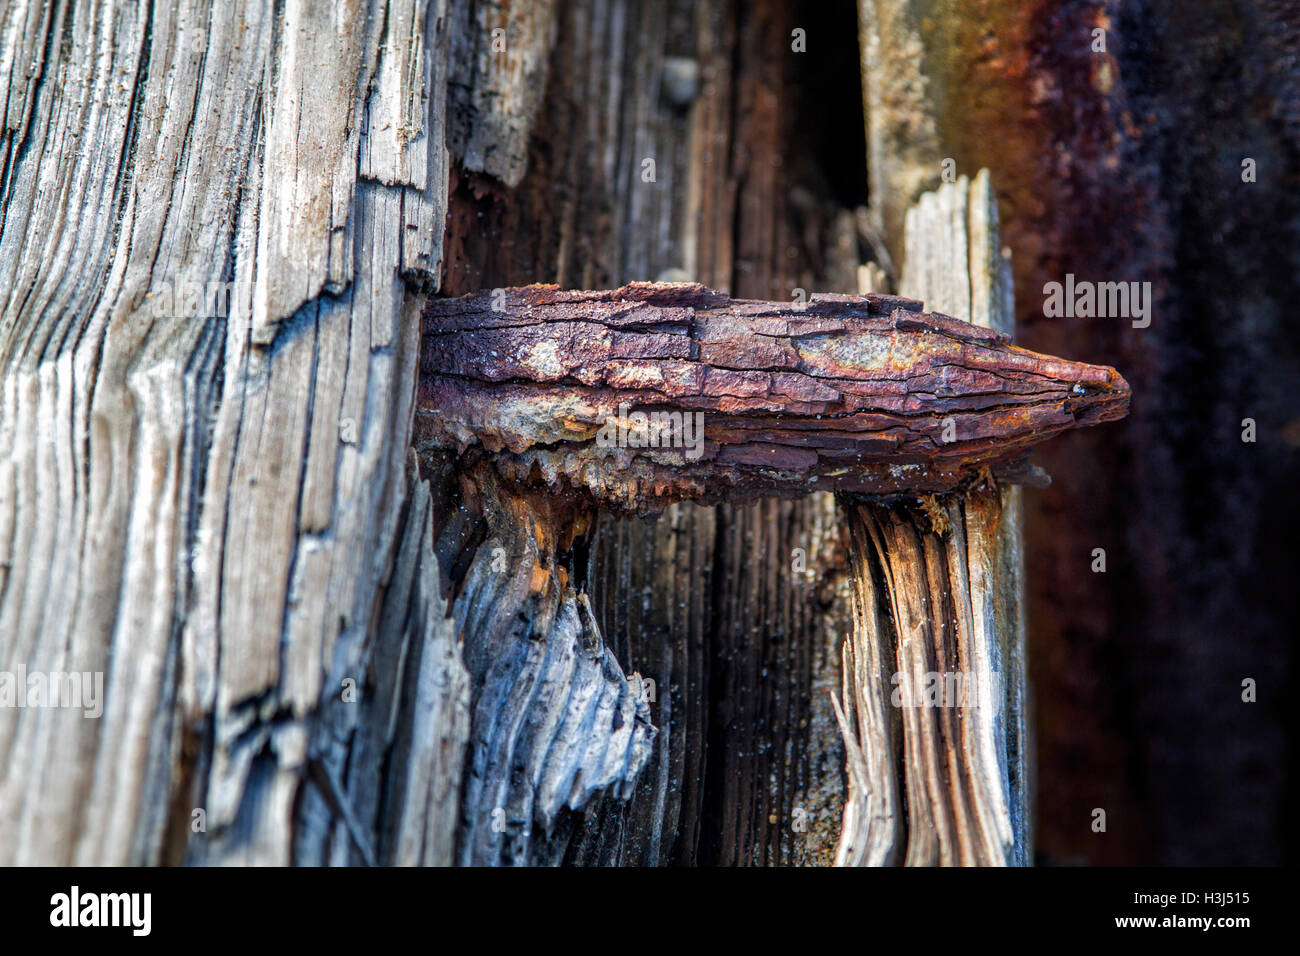 Wind, rain and suin have weathered the decking of the Hillsboro Inlet jetty as seen by this rusted steel bolt and - Stock Image